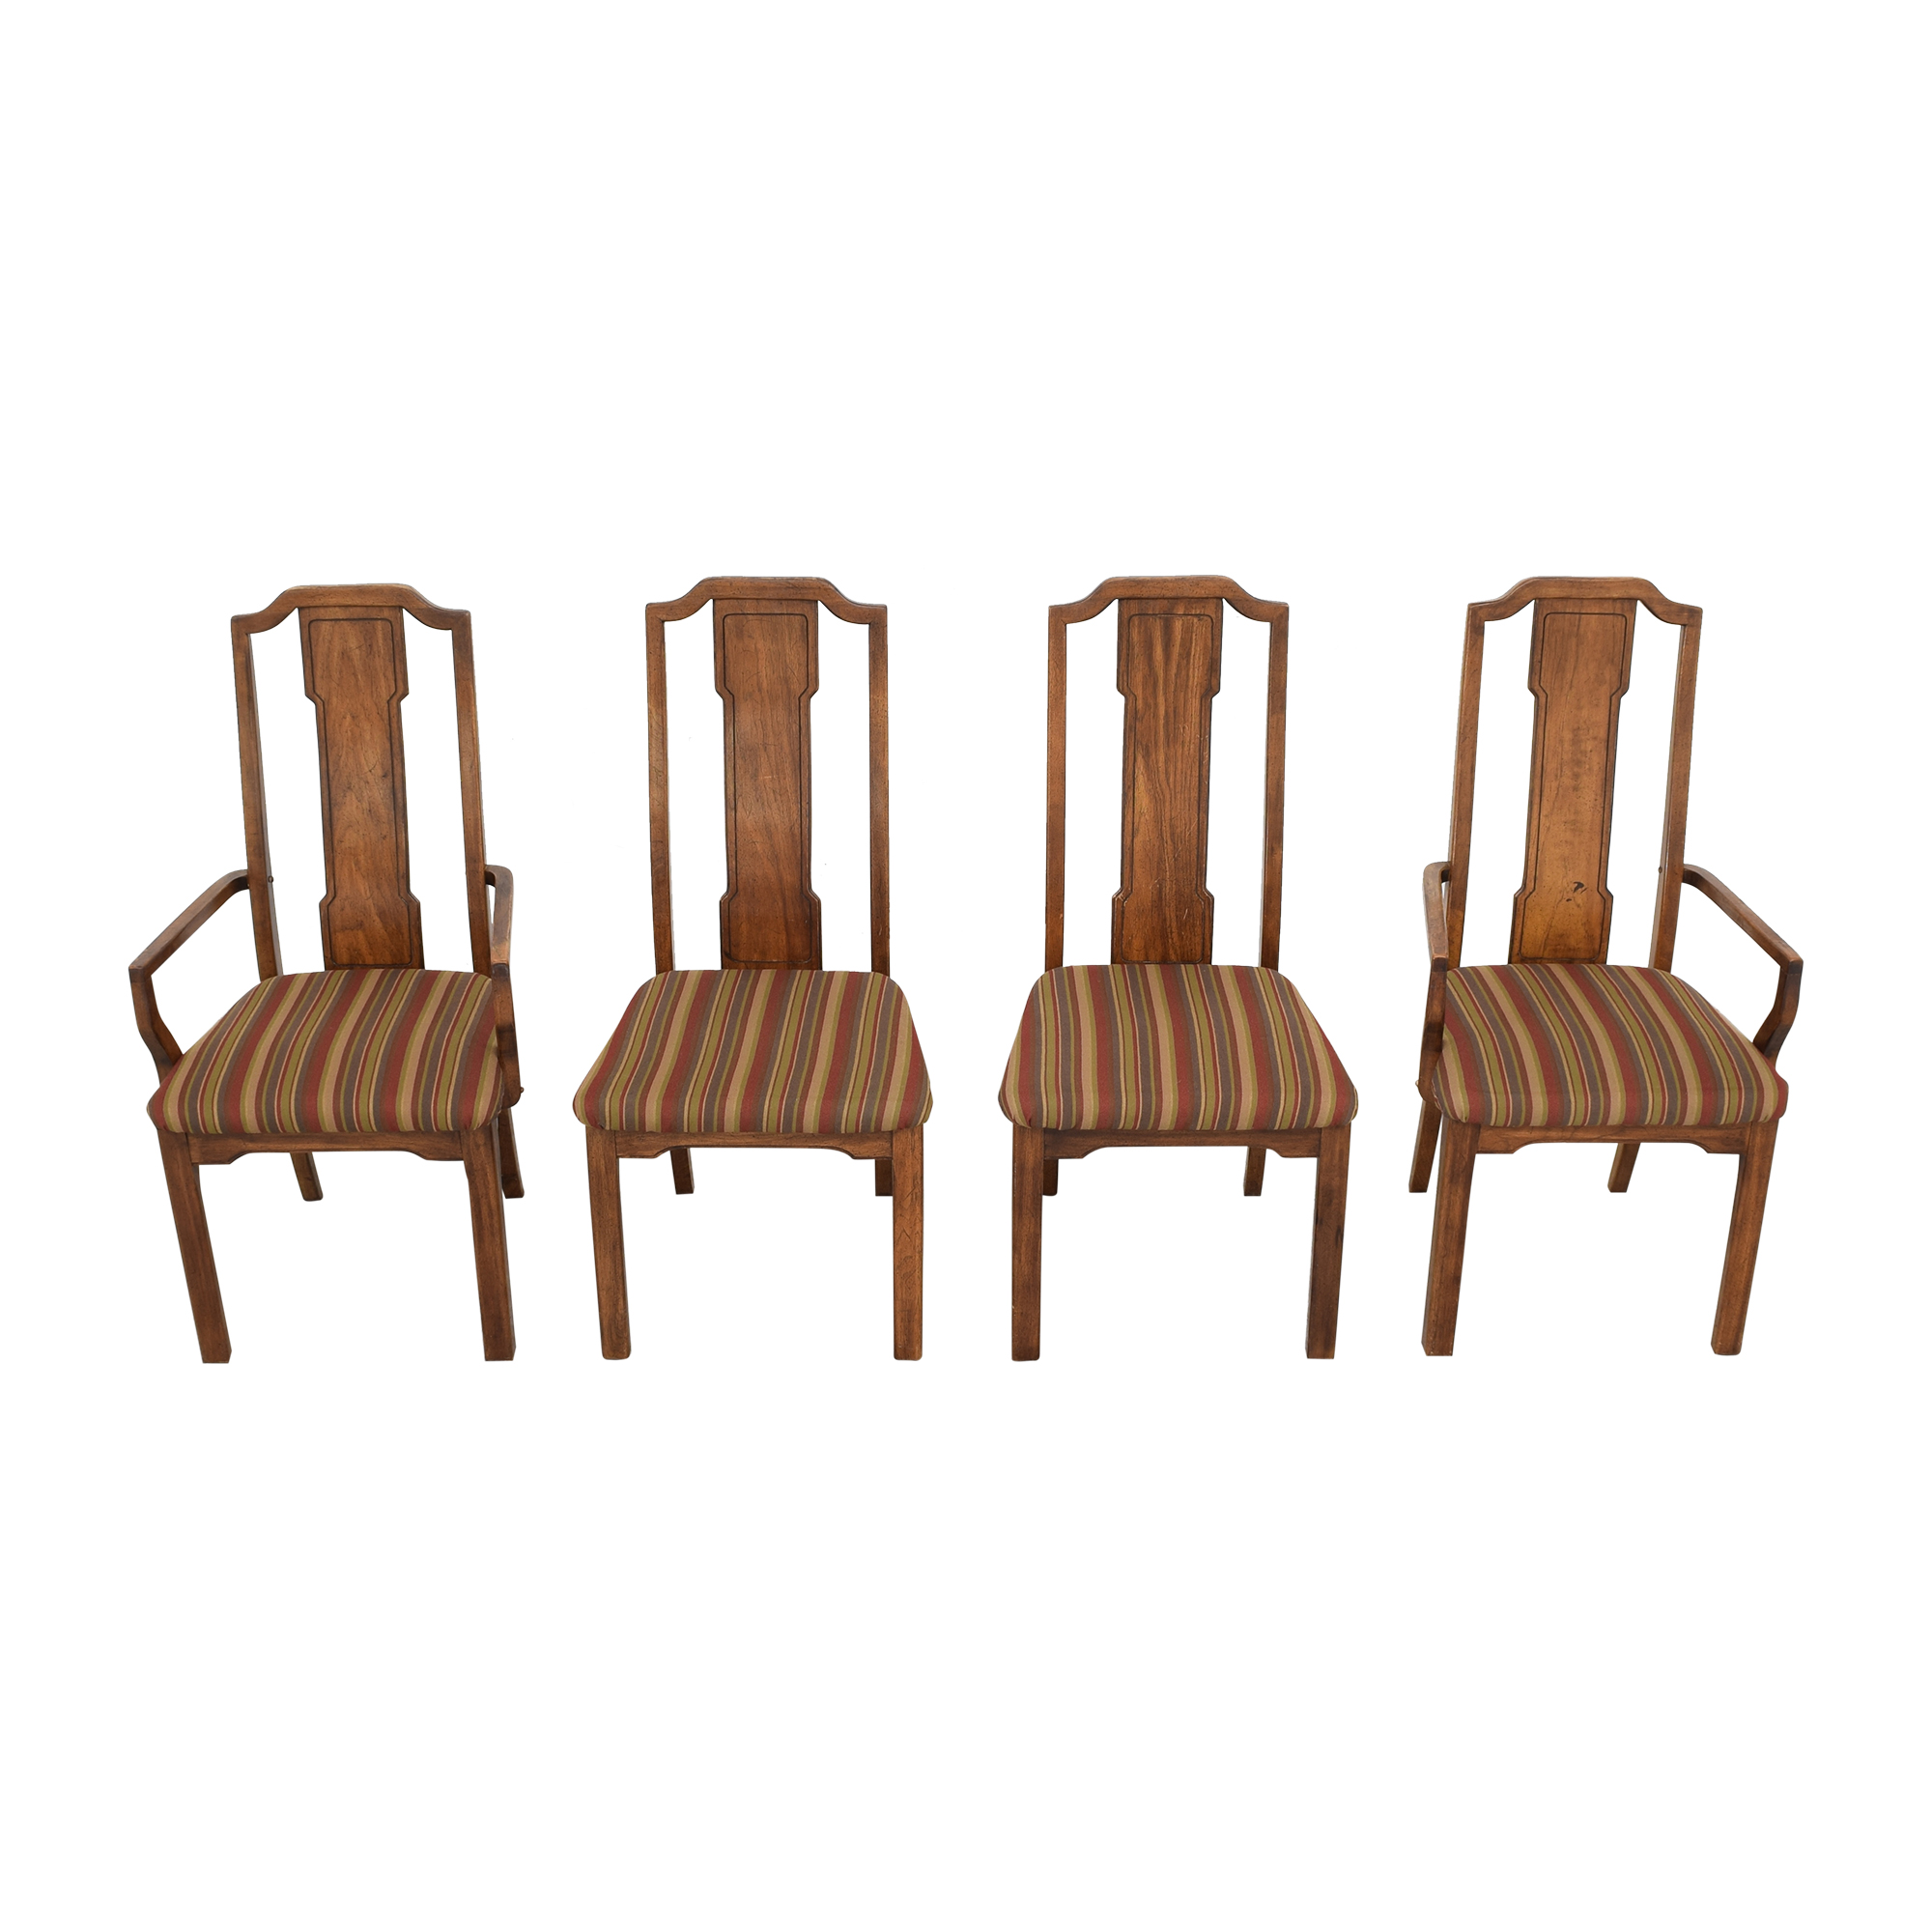 Thomasville Thomasville Dining Chairs for sale